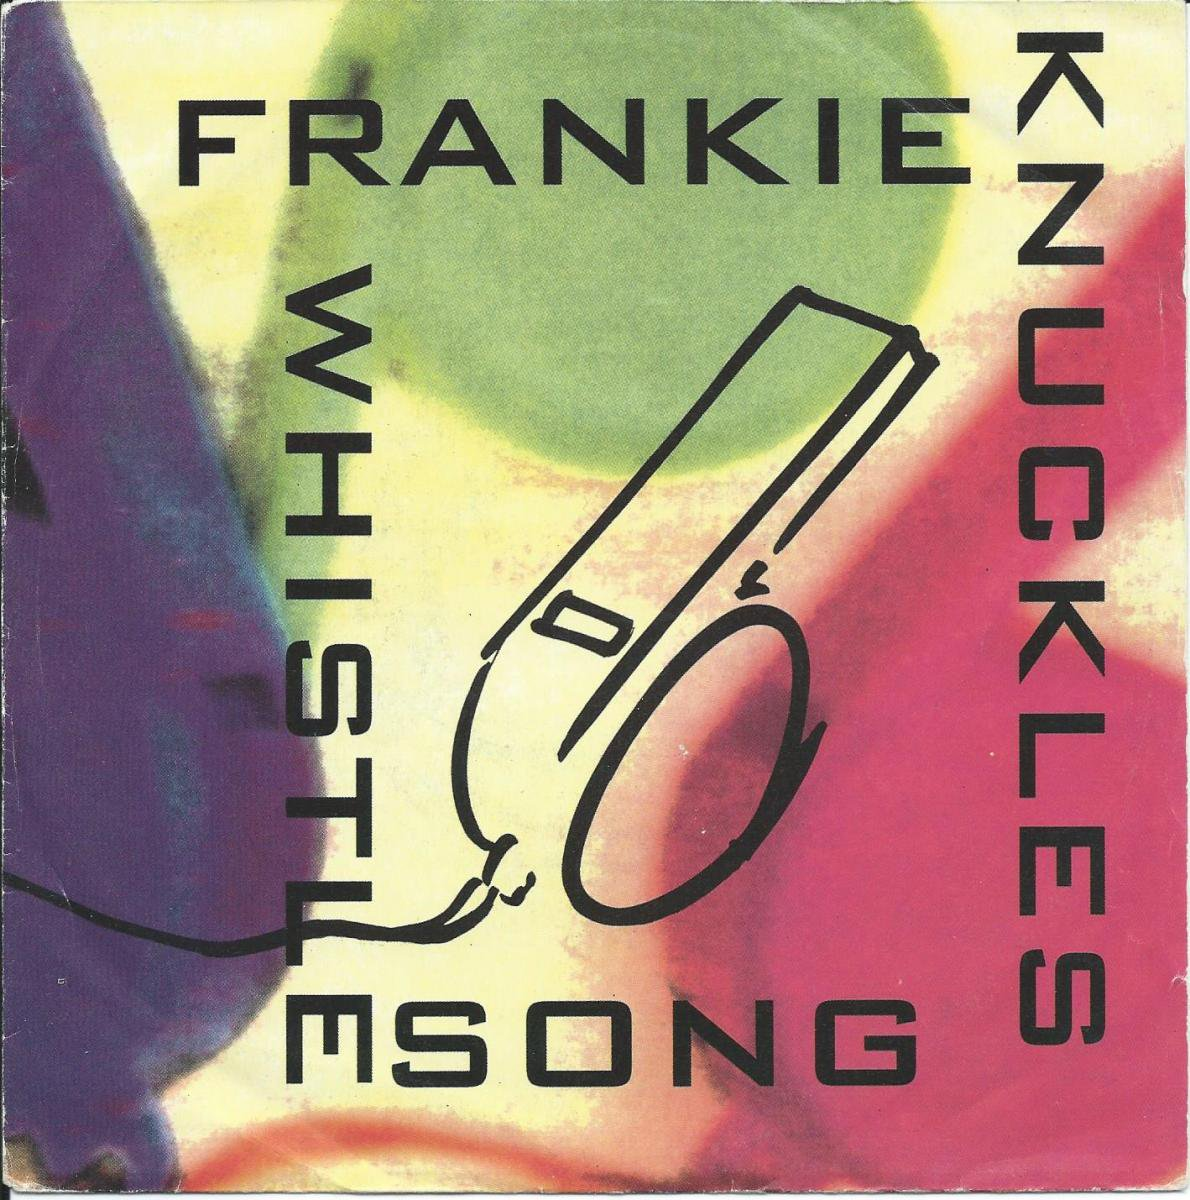 FRANKIE KNUCKLES / THE WHISTLE SONG (7